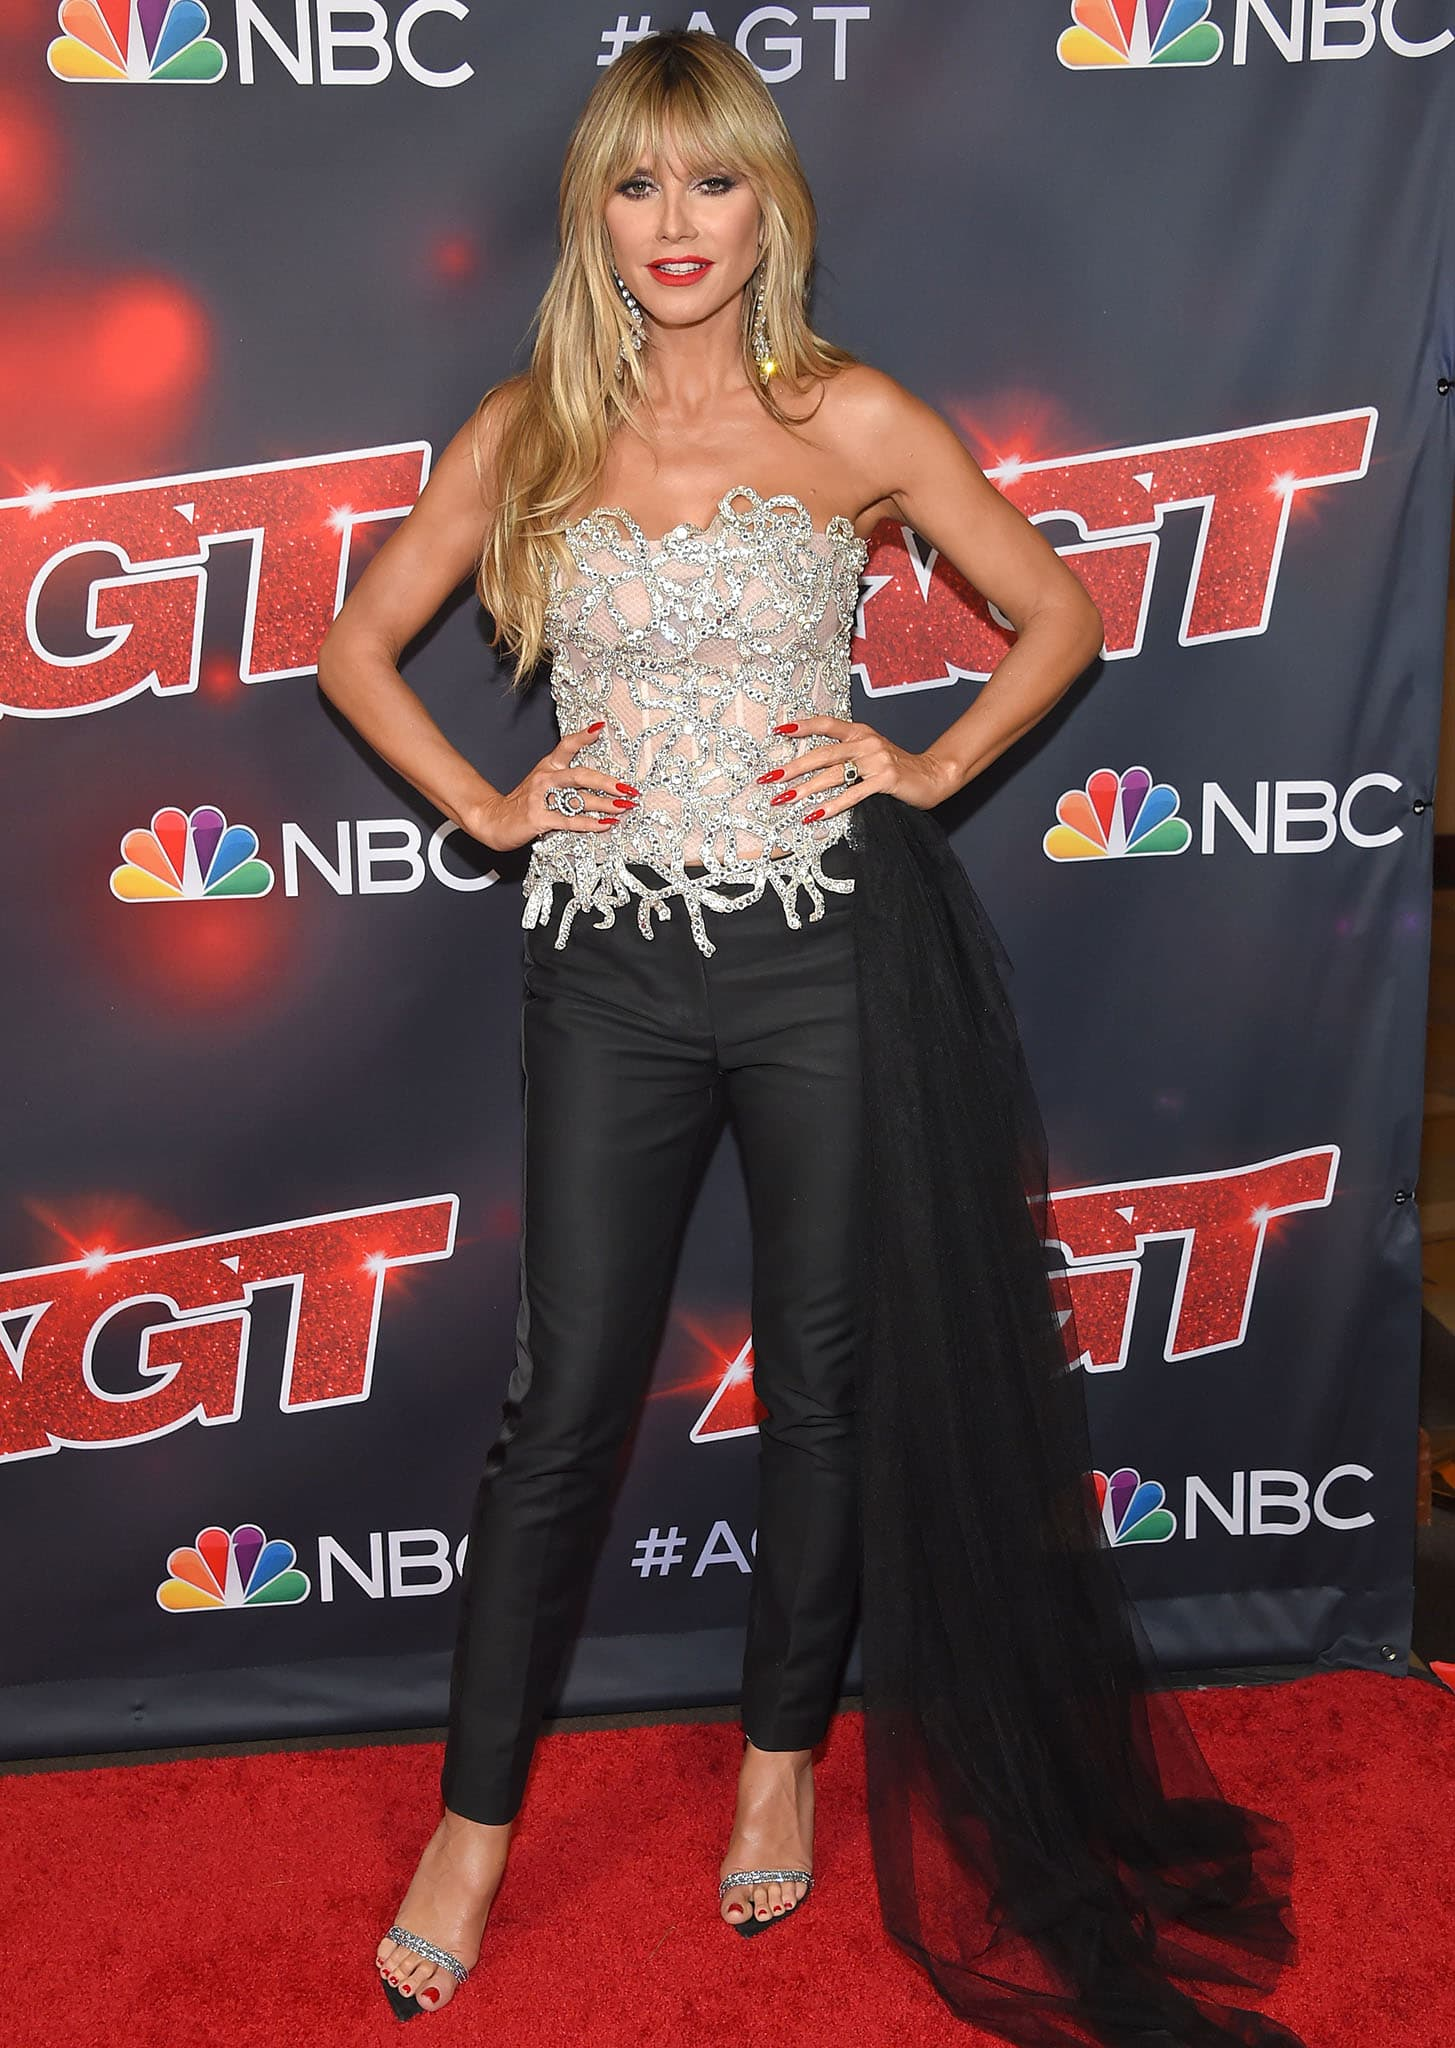 Heidi Klum flaunts her model figure at the America's Got Talent finale held at the Dolby Theatre on September 15, 2021